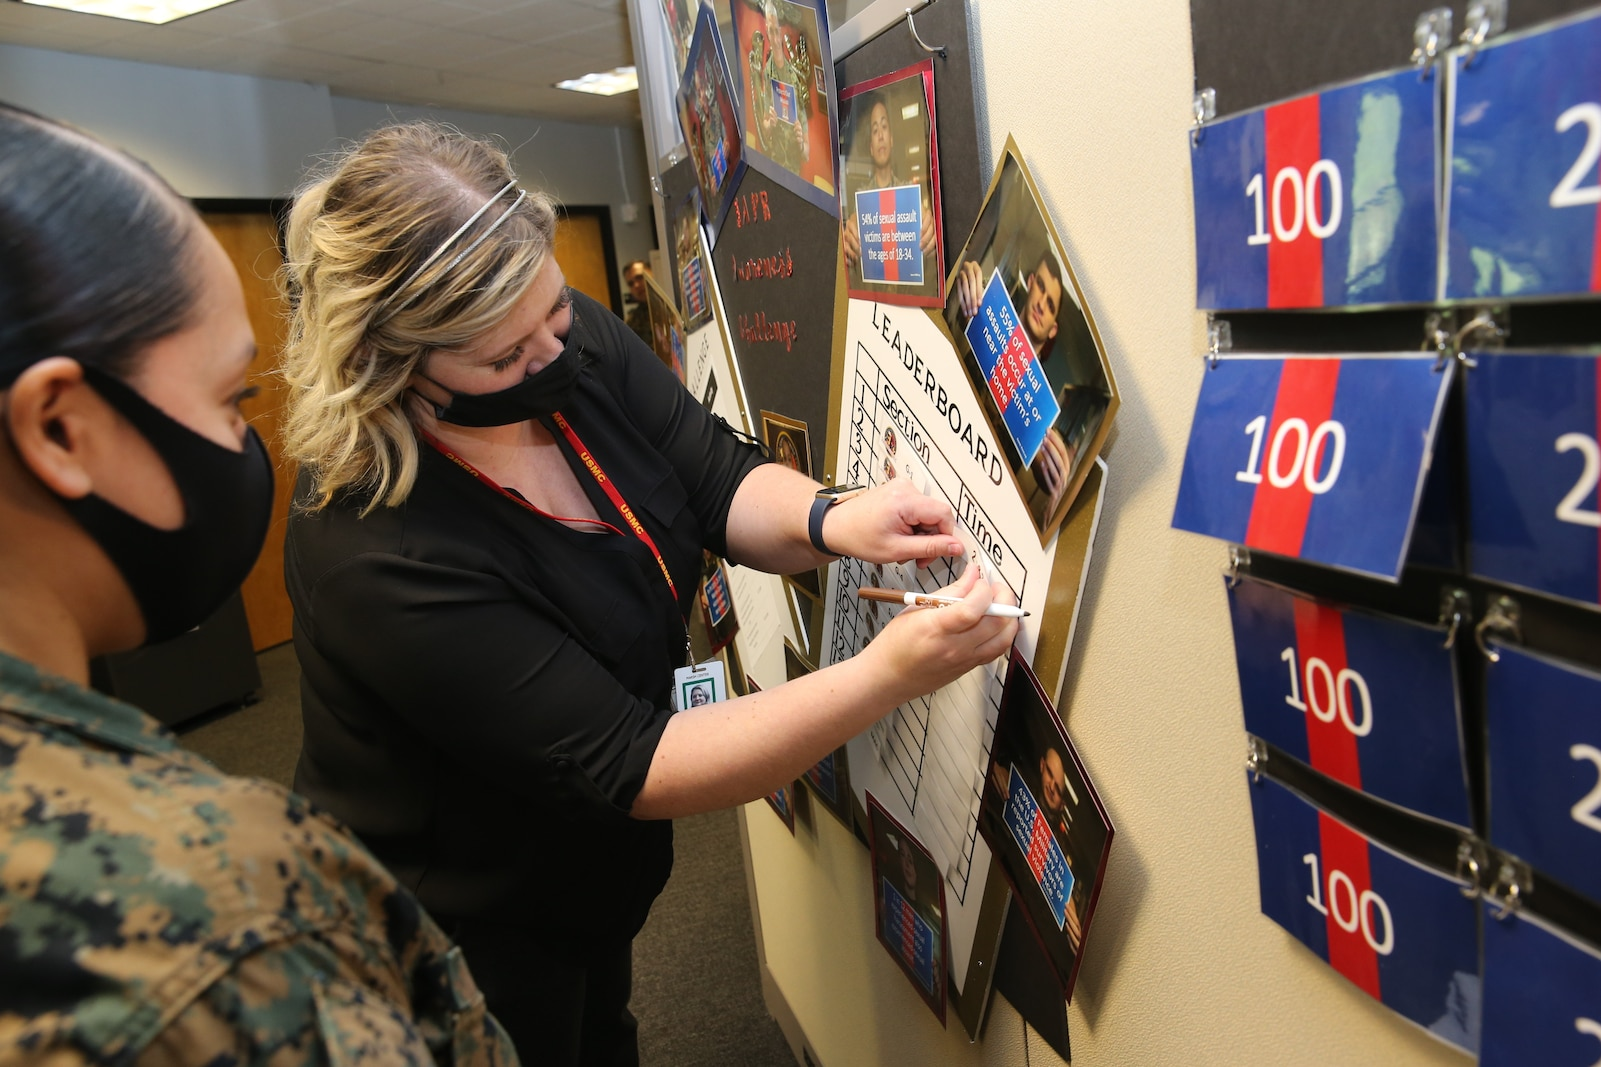 The Marine Corps Recruiting Command Sexual Assault Prevention and Response team launched several initiatives in conjunction with the Marine Corps' 17th Annual Sexual Assault Awareness and Prevention Month, April 2021. Zuzy Hall, the MCRC Sexual...